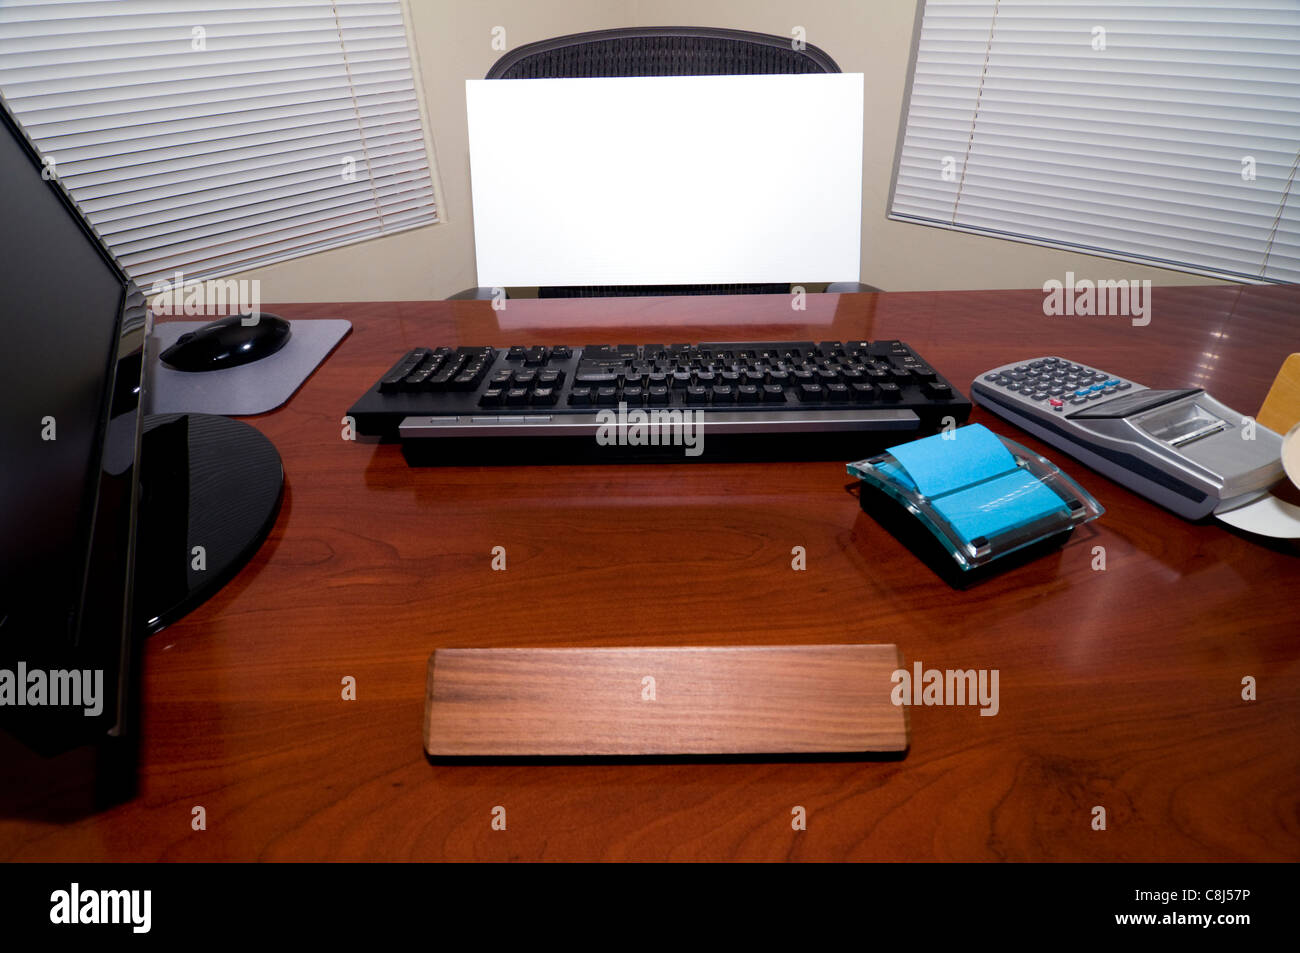 An Office Desk with a Blank Sign Board in the Chair. Add Your Text to Express Numerous Business and Employment Issues! - Stock Image